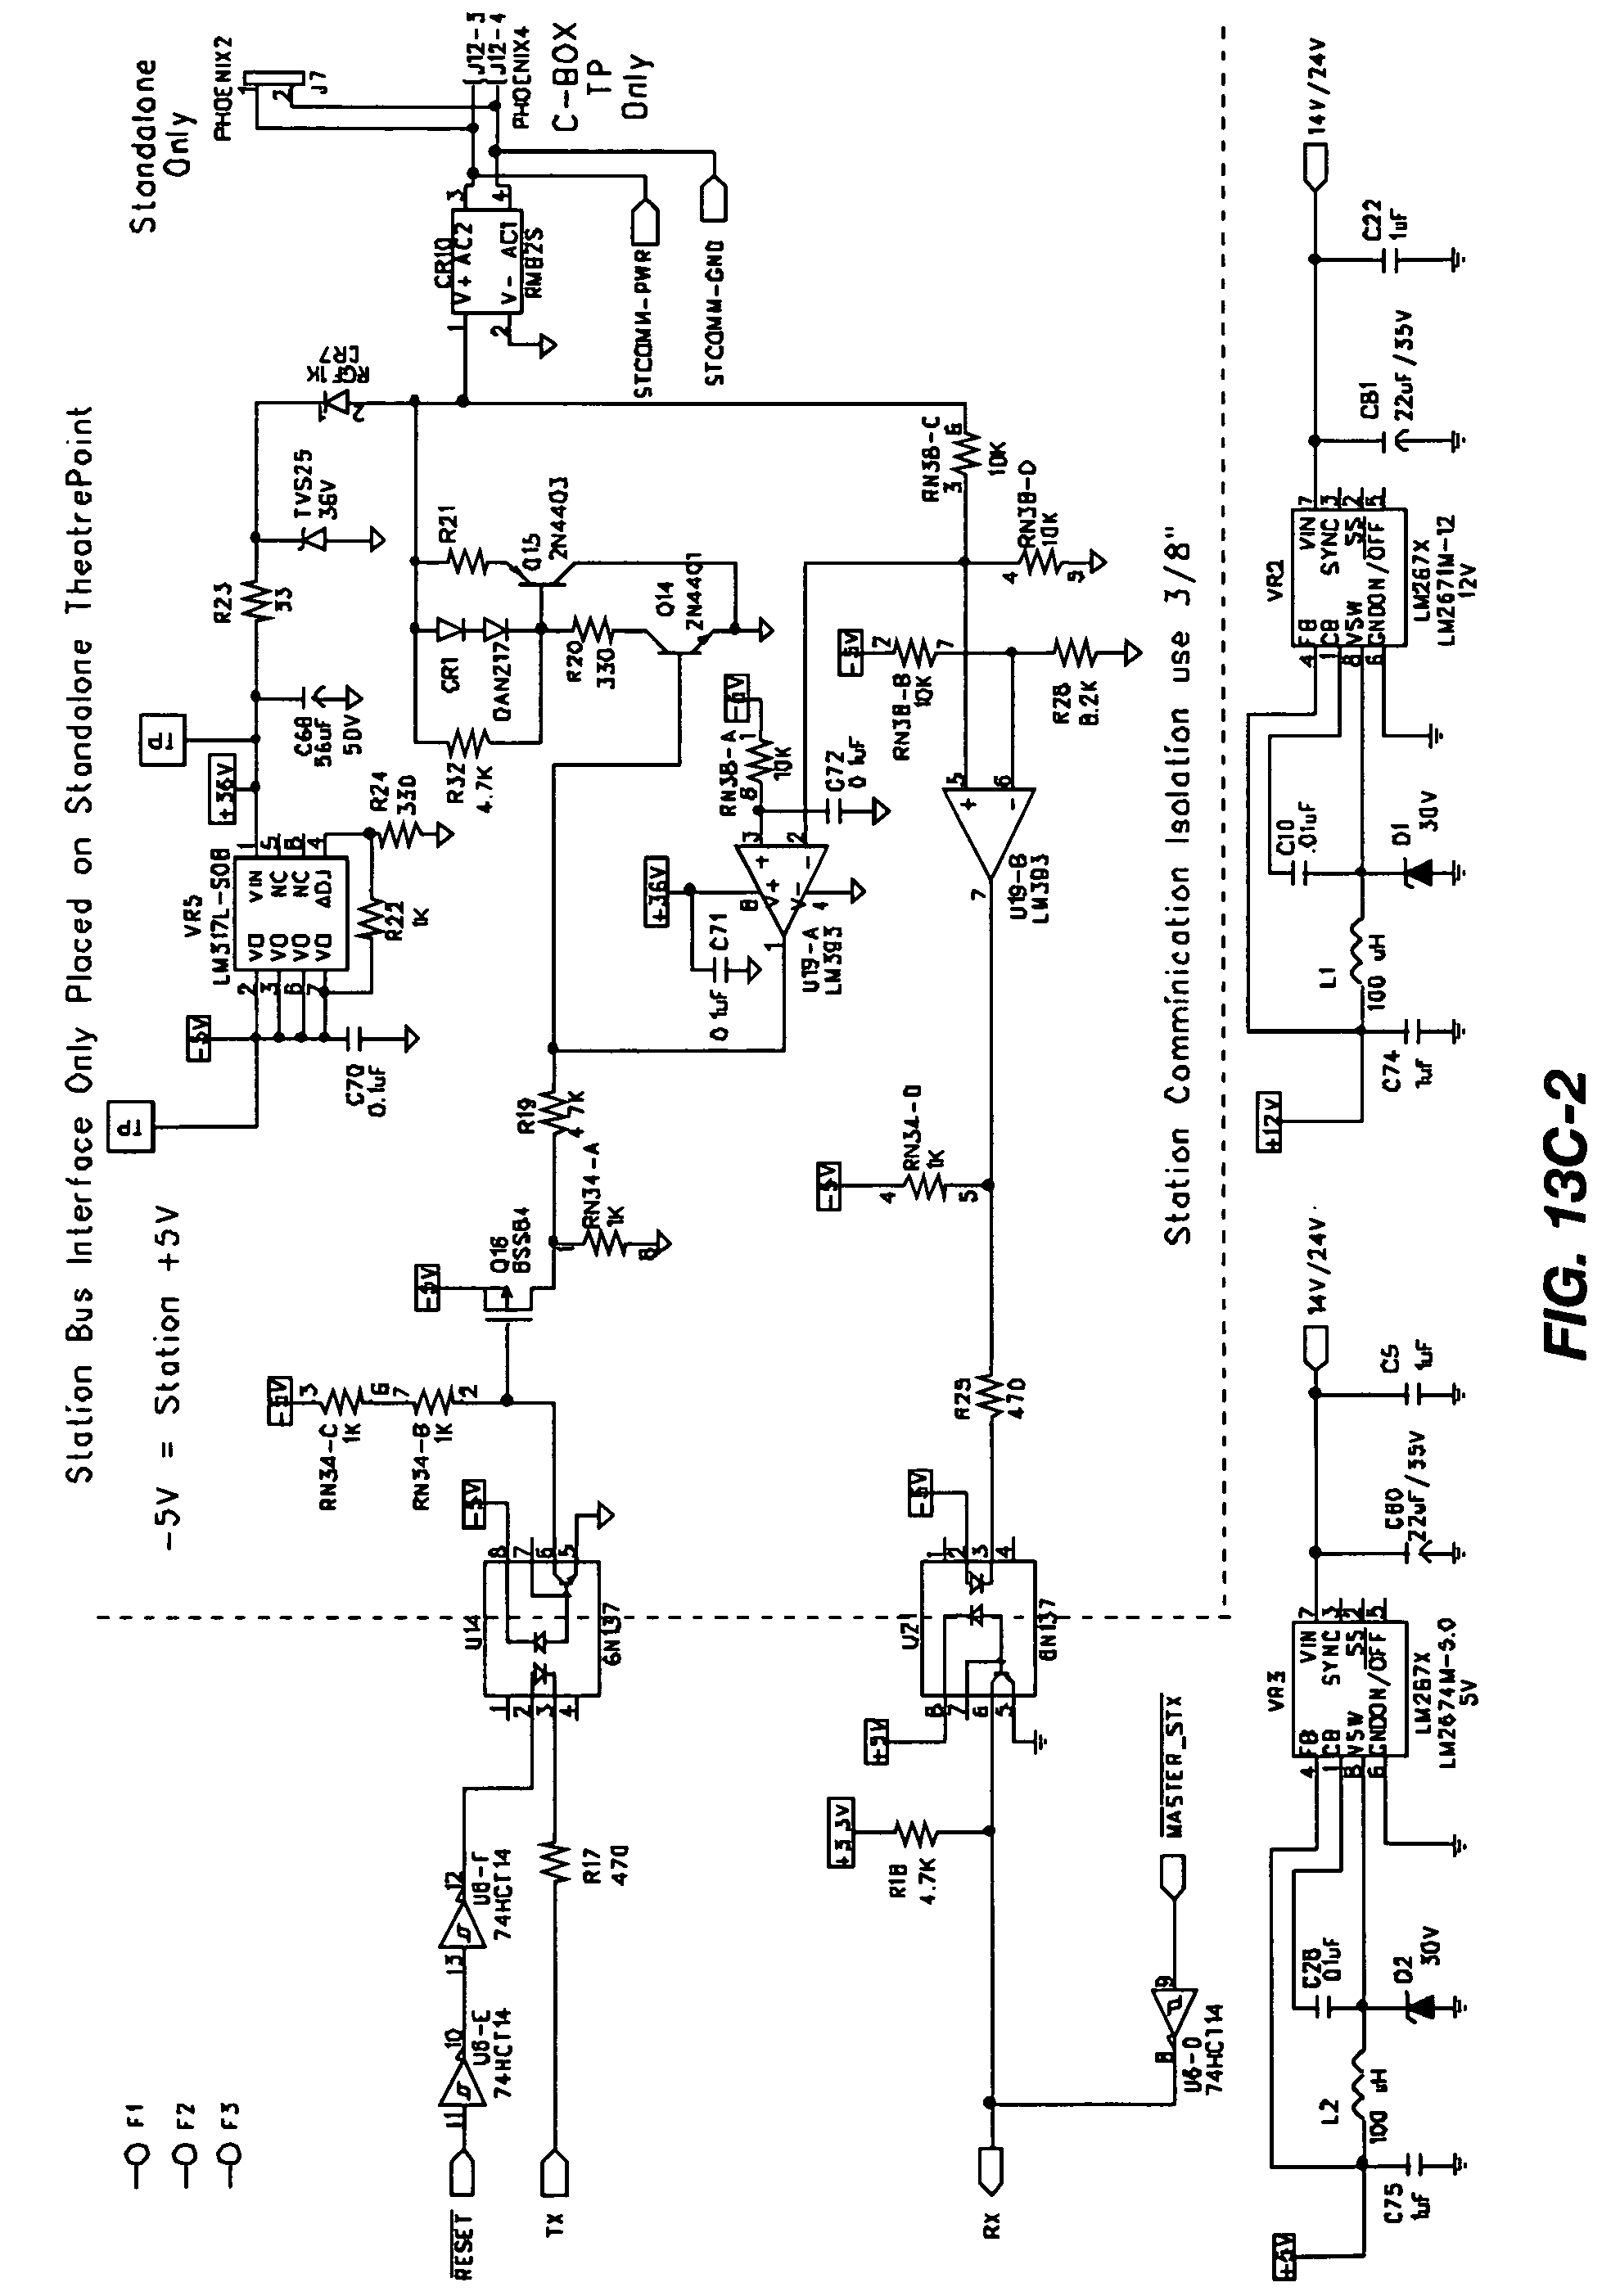 Home Theater Cable Diagram